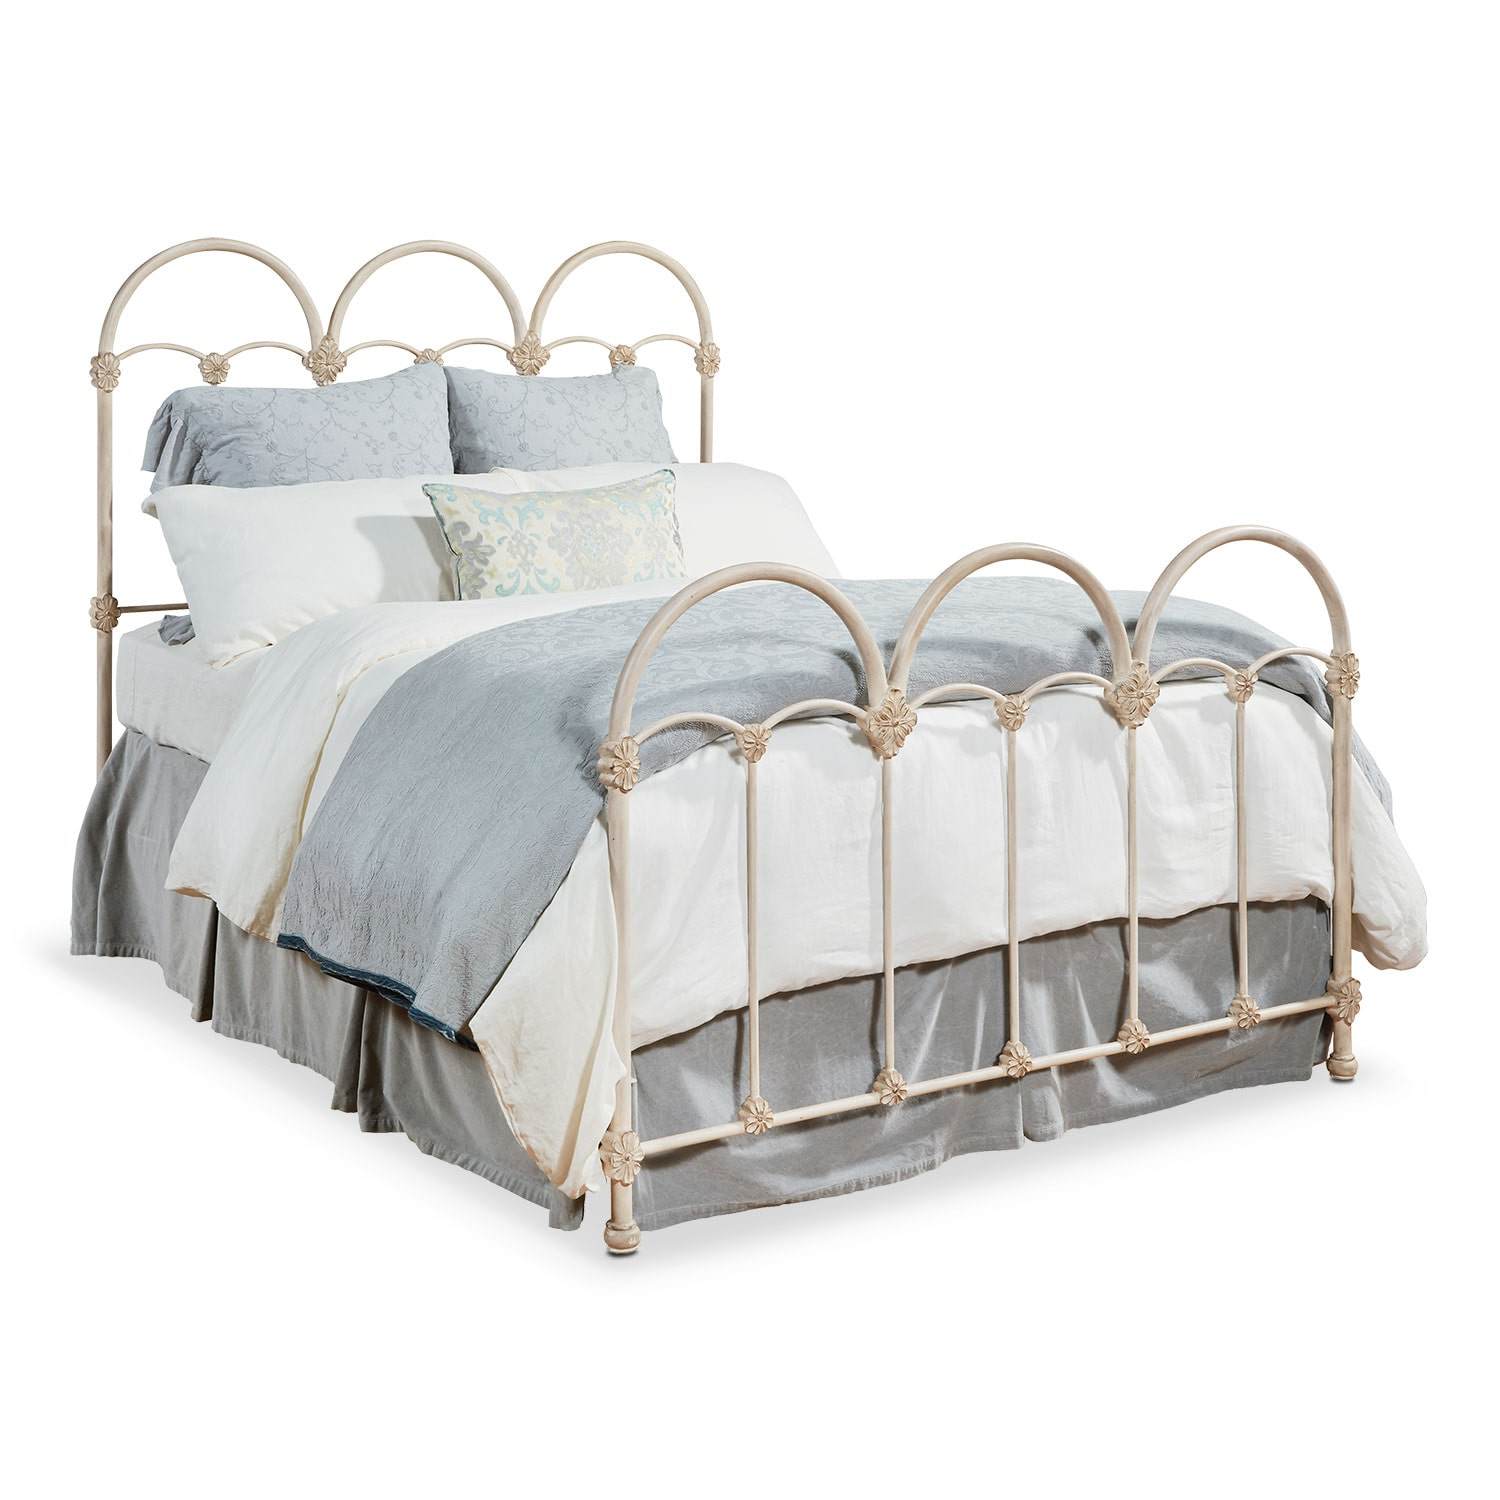 Rosette Queen Iron Bed - Antique White